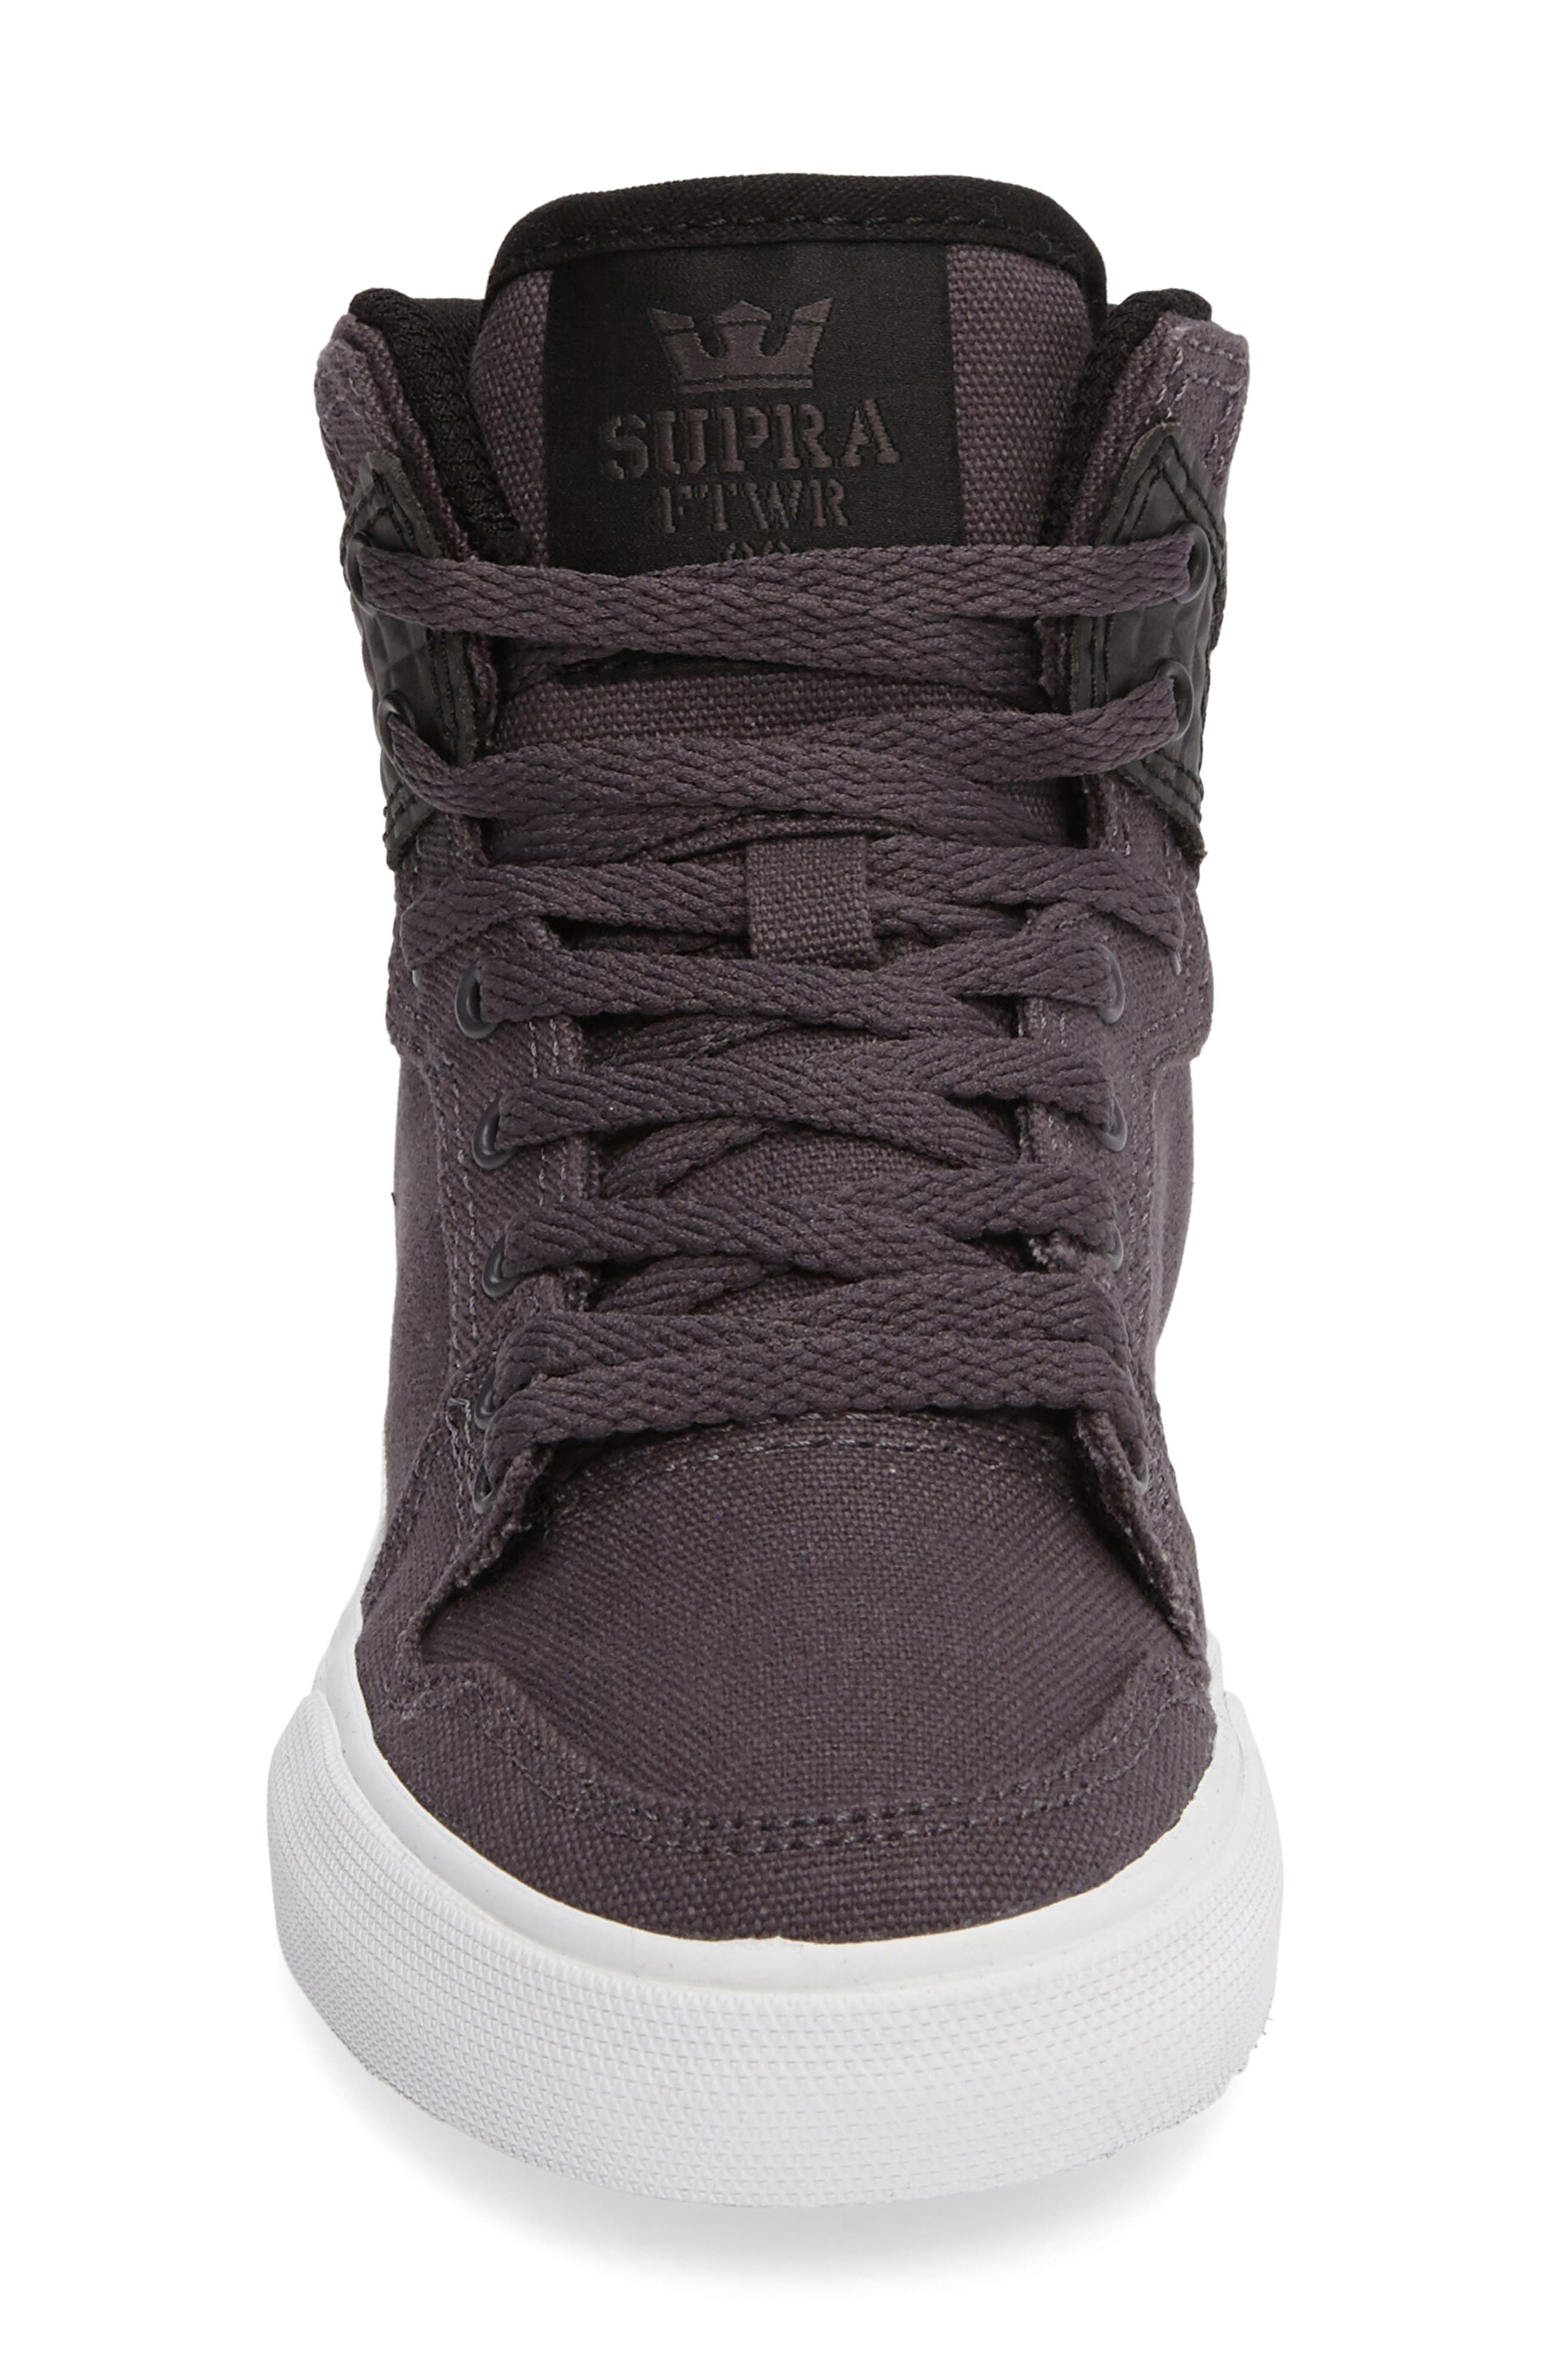 Vaider High Top Sneaker,                             Alternate thumbnail 2, color,                             006